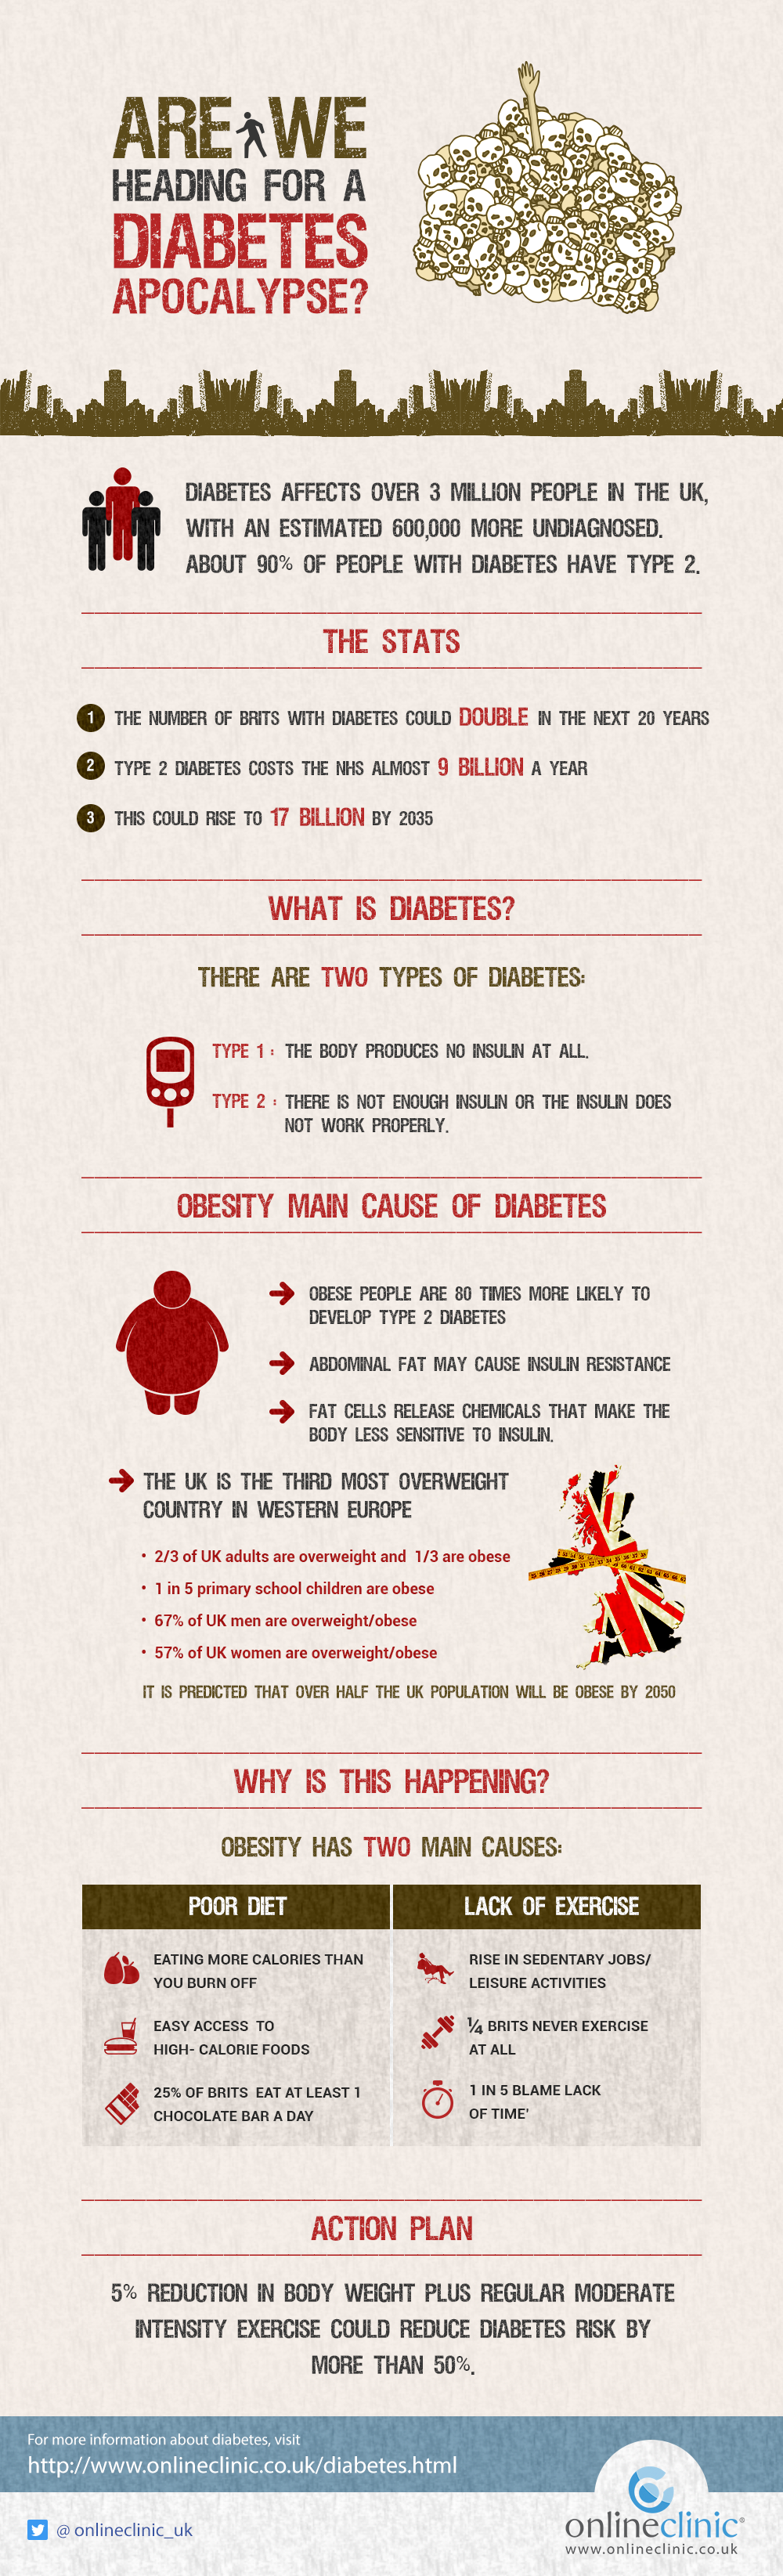 Diabetes affects over 3 million people in the UK, with an estimated 600,000 more undiagnosed. Although 90% of people who have diabetes suffer from type 2, both types are important to fight against.